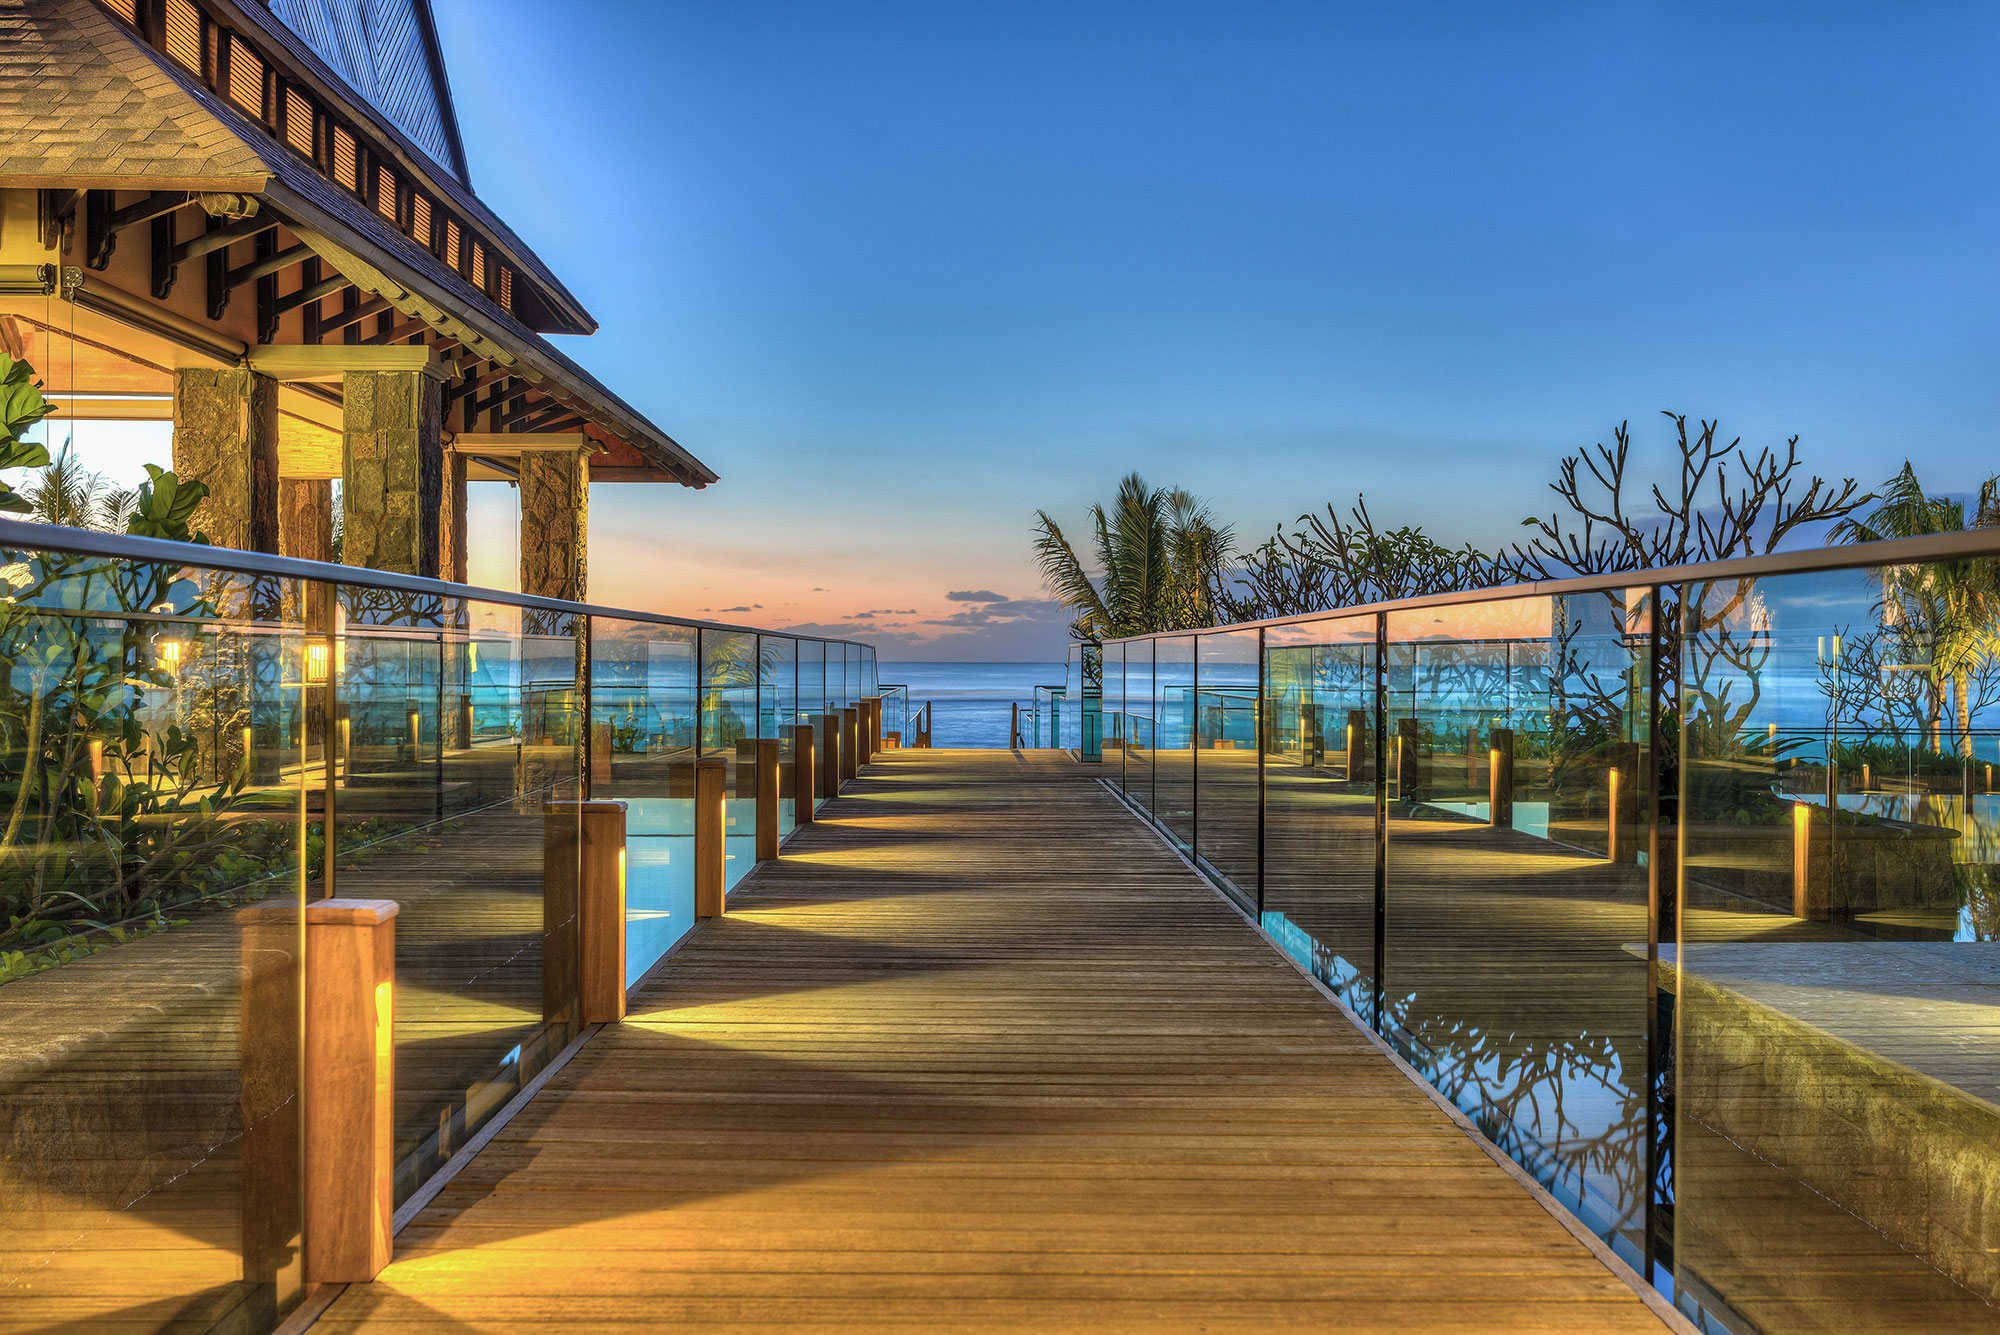 Starwood Hotels Resorts To Debut Westin Brand In Mauritius With The New Turtle Bay Resort Spa